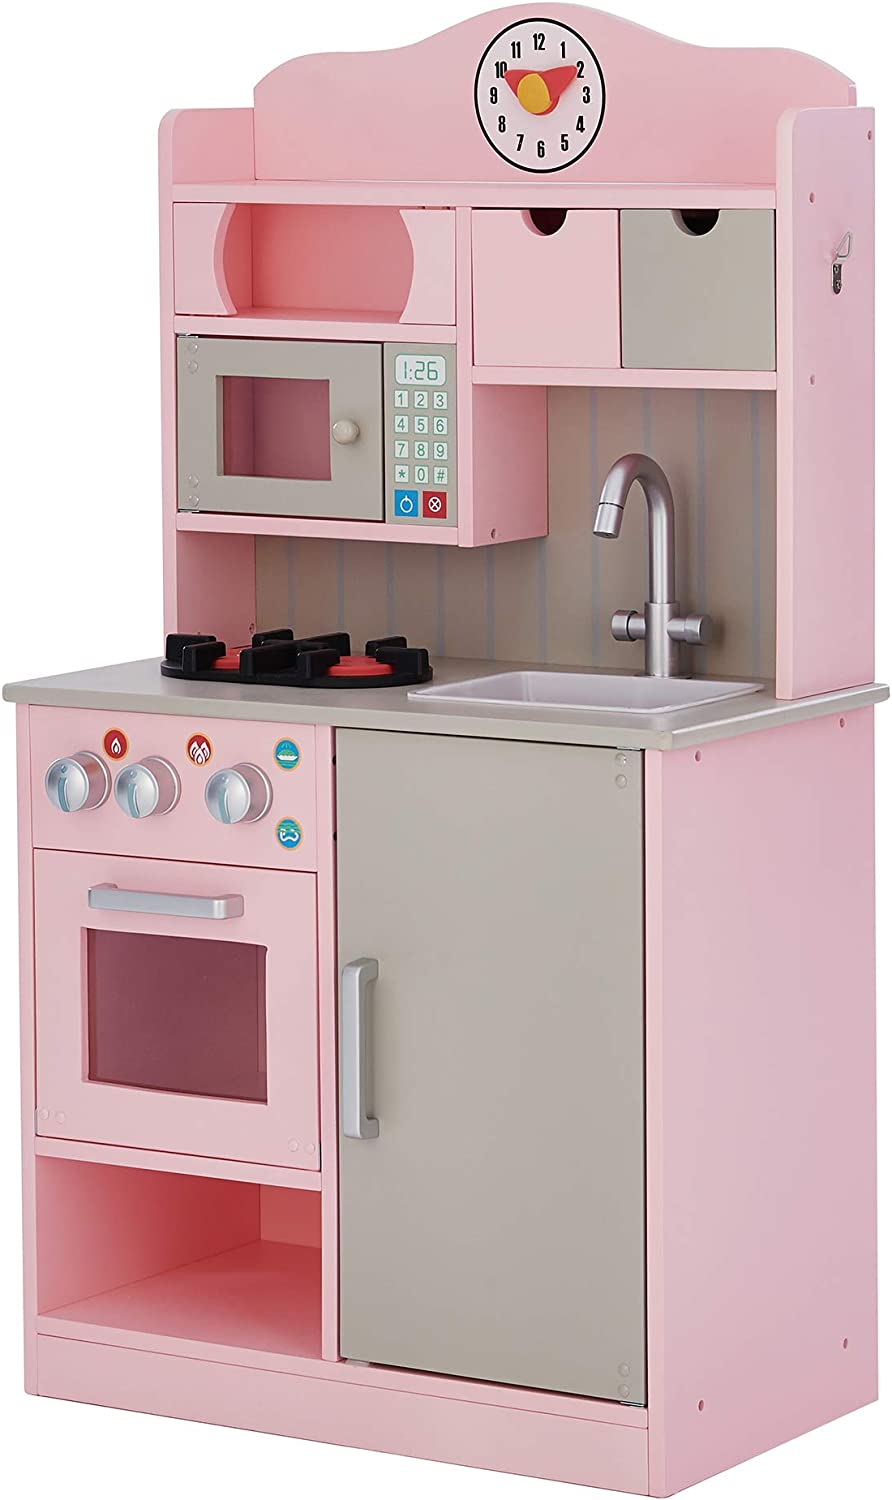 Teamson Kids Little Chef Florence Classic Play Kitchen Pink Grey ,TD 11708P